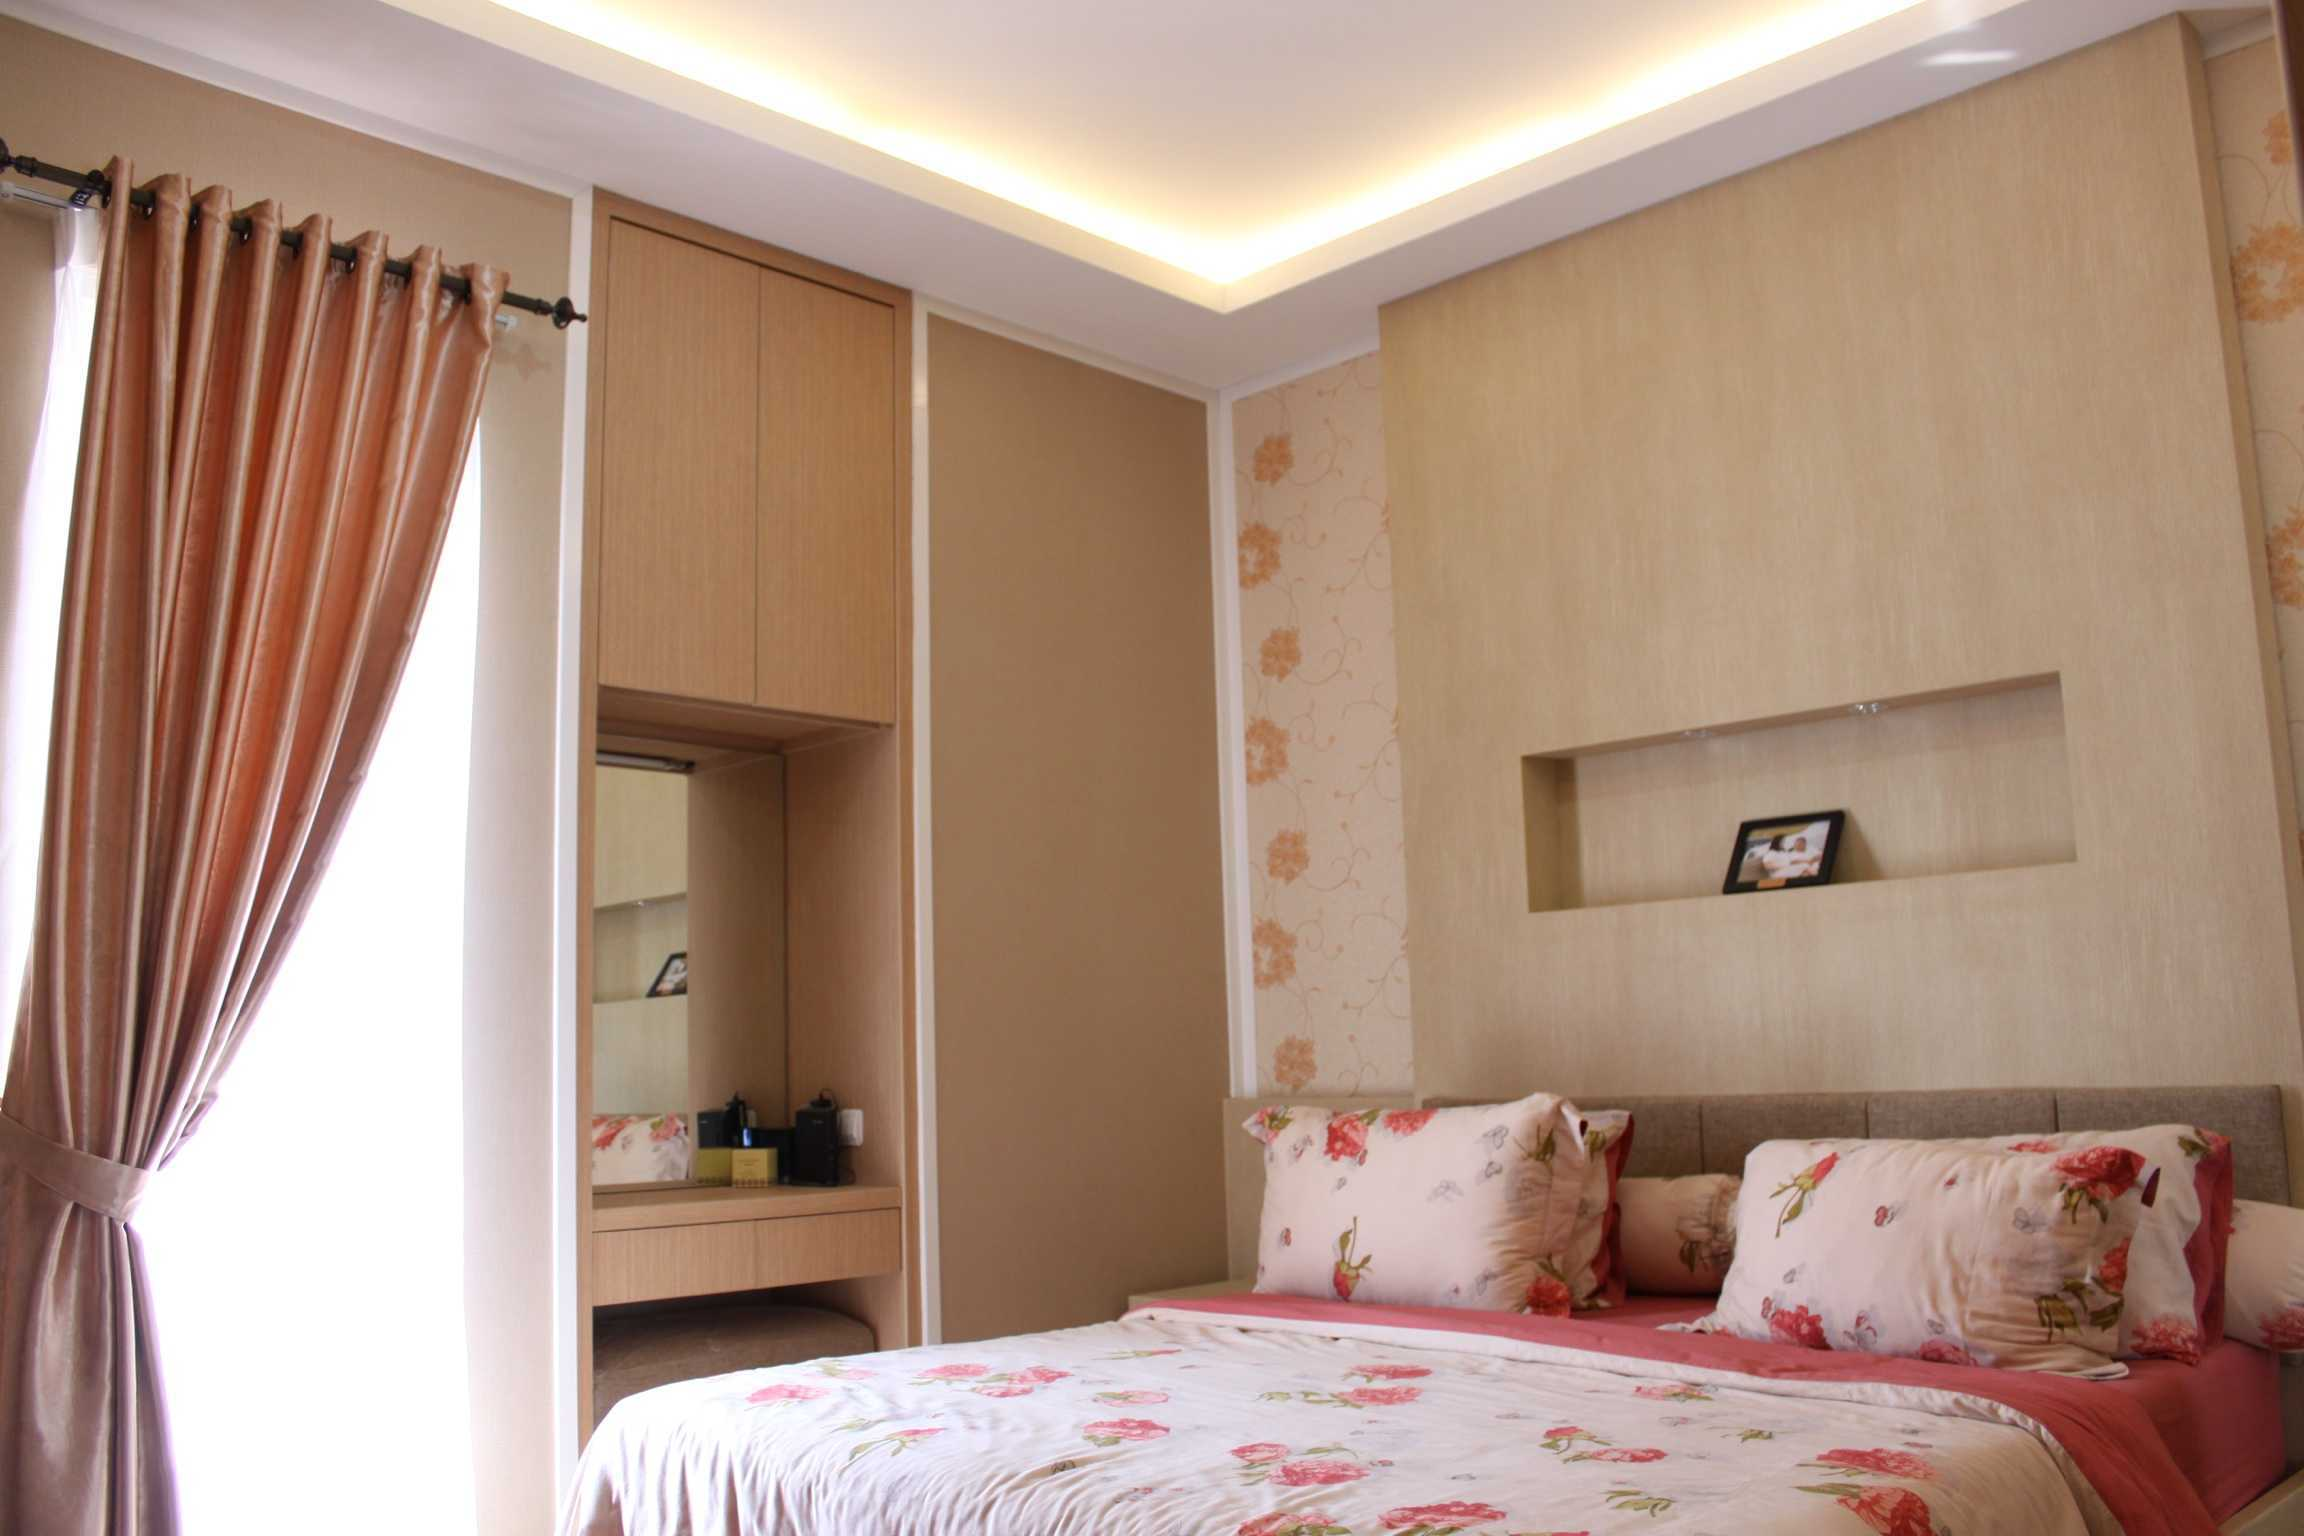 Fiano Cozy House Jakarta, Indonesia Jakarta, Indonesia Child Room Contemporary  29022